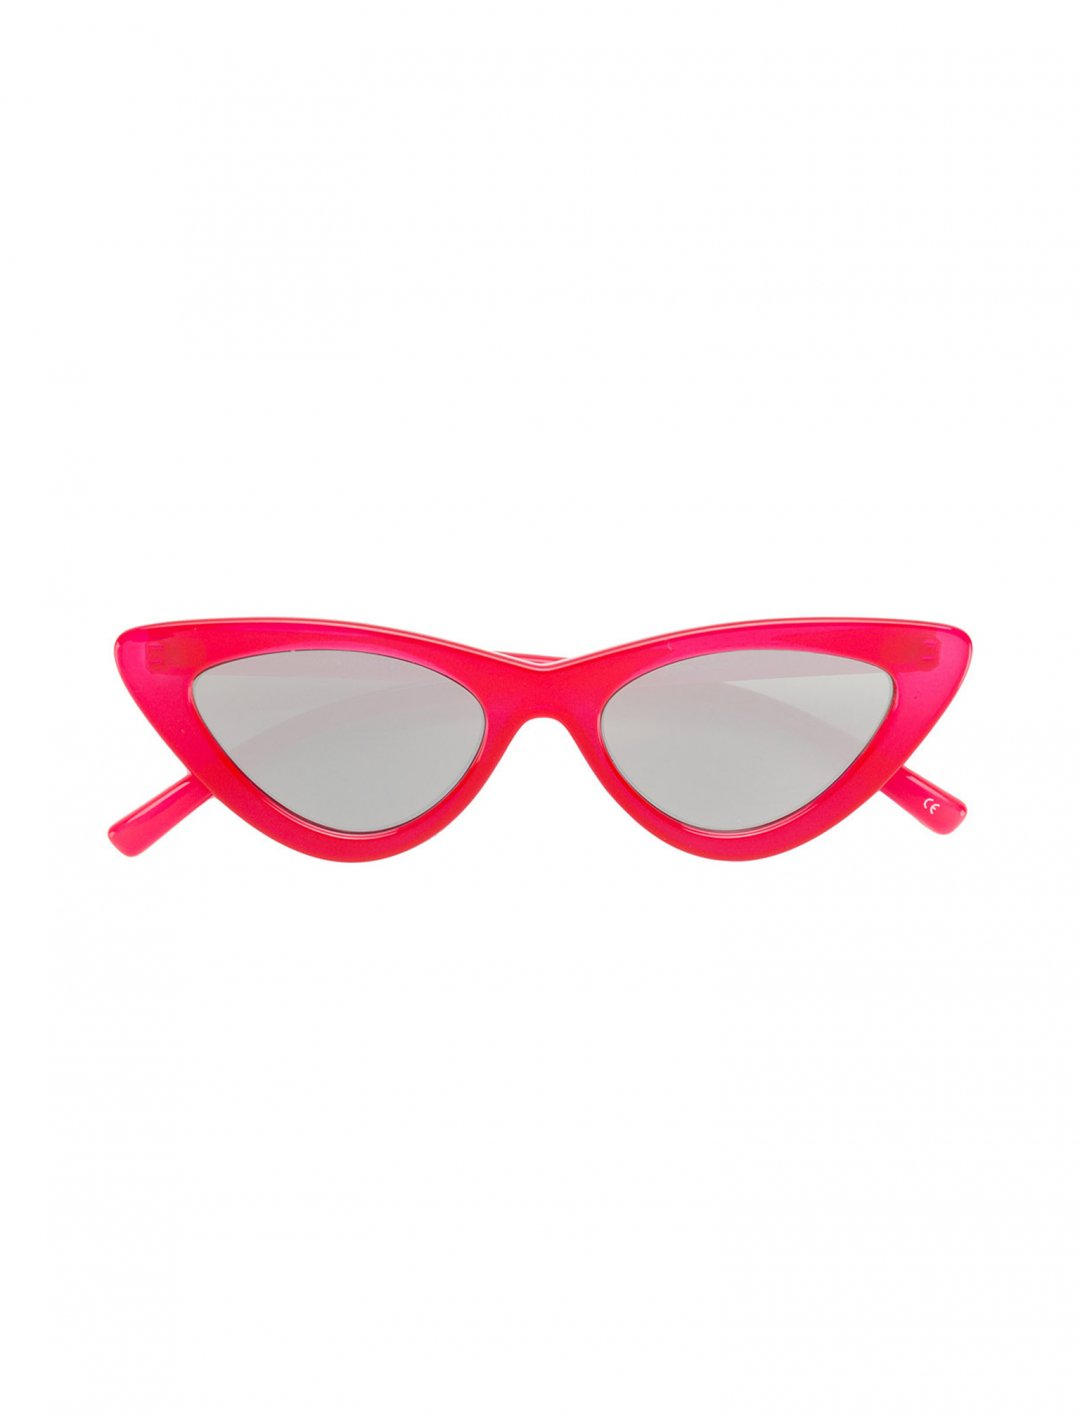 "Era's Sunglasses {""id"":16,""product_section_id"":1,""name"":""Accessories"",""order"":15} Le Specs"